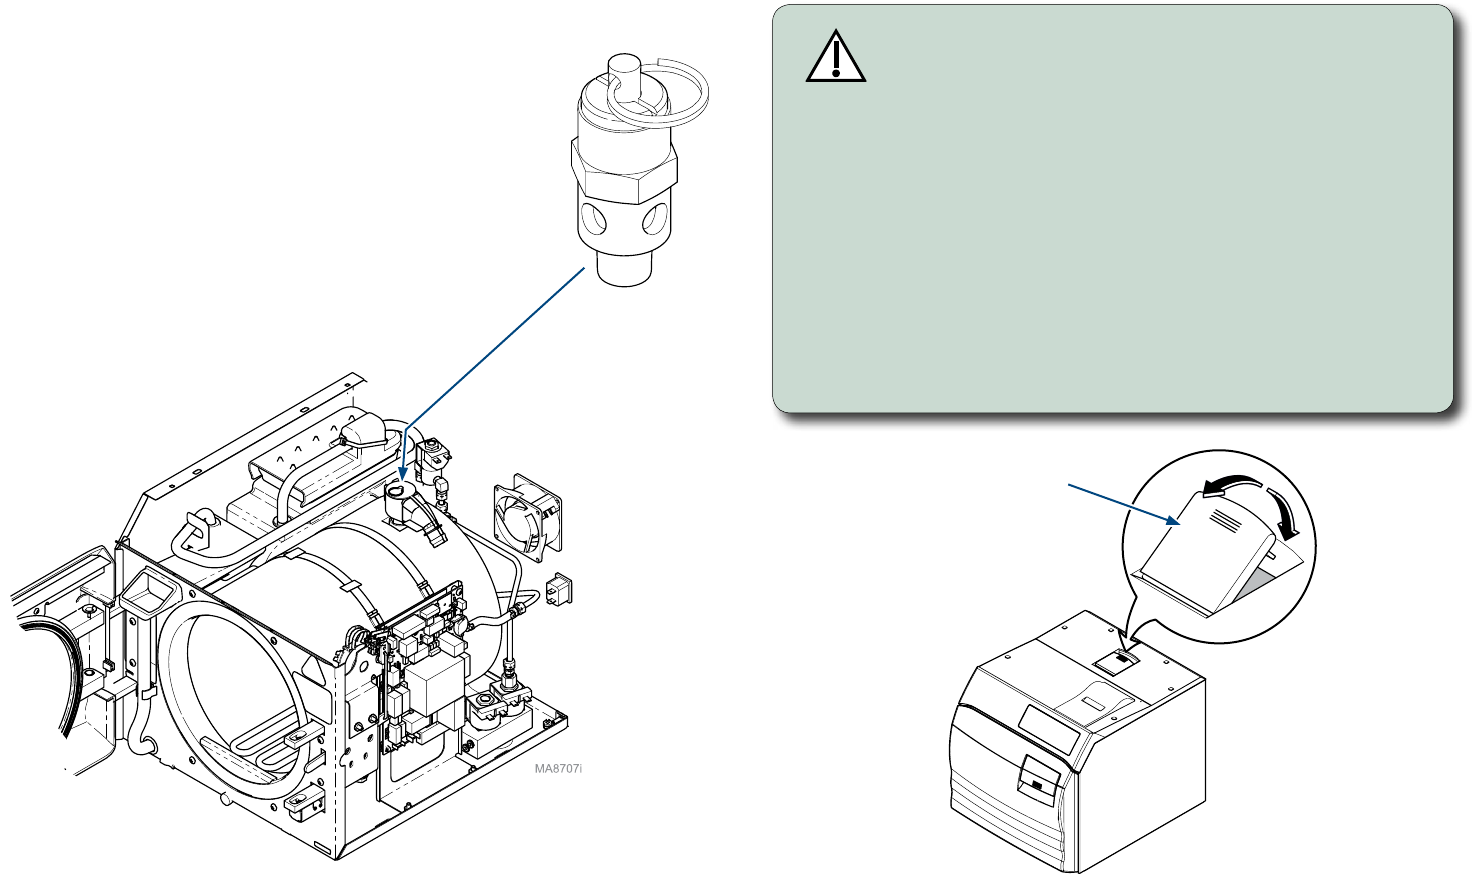 004 1032 00m9 M11 033 034 Ultraclave Sterilizertroubleshooting Midmark Wiring Diagram English 88 00